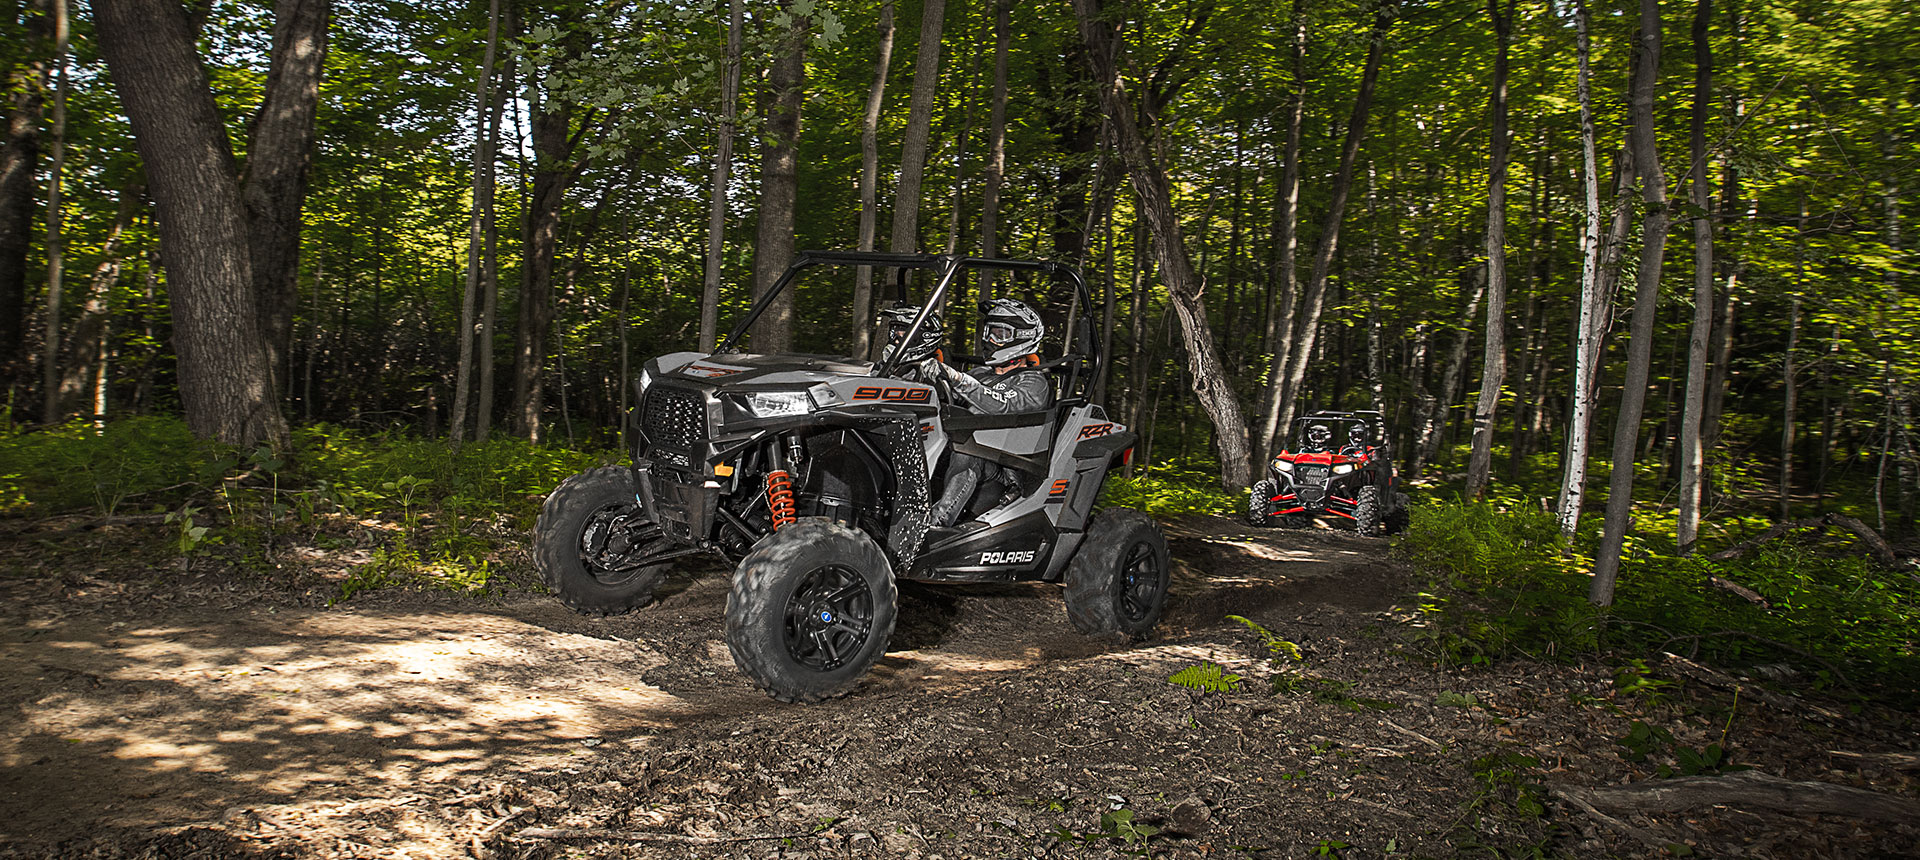 2019 Polaris RZR S 900 in Woodstock, Illinois